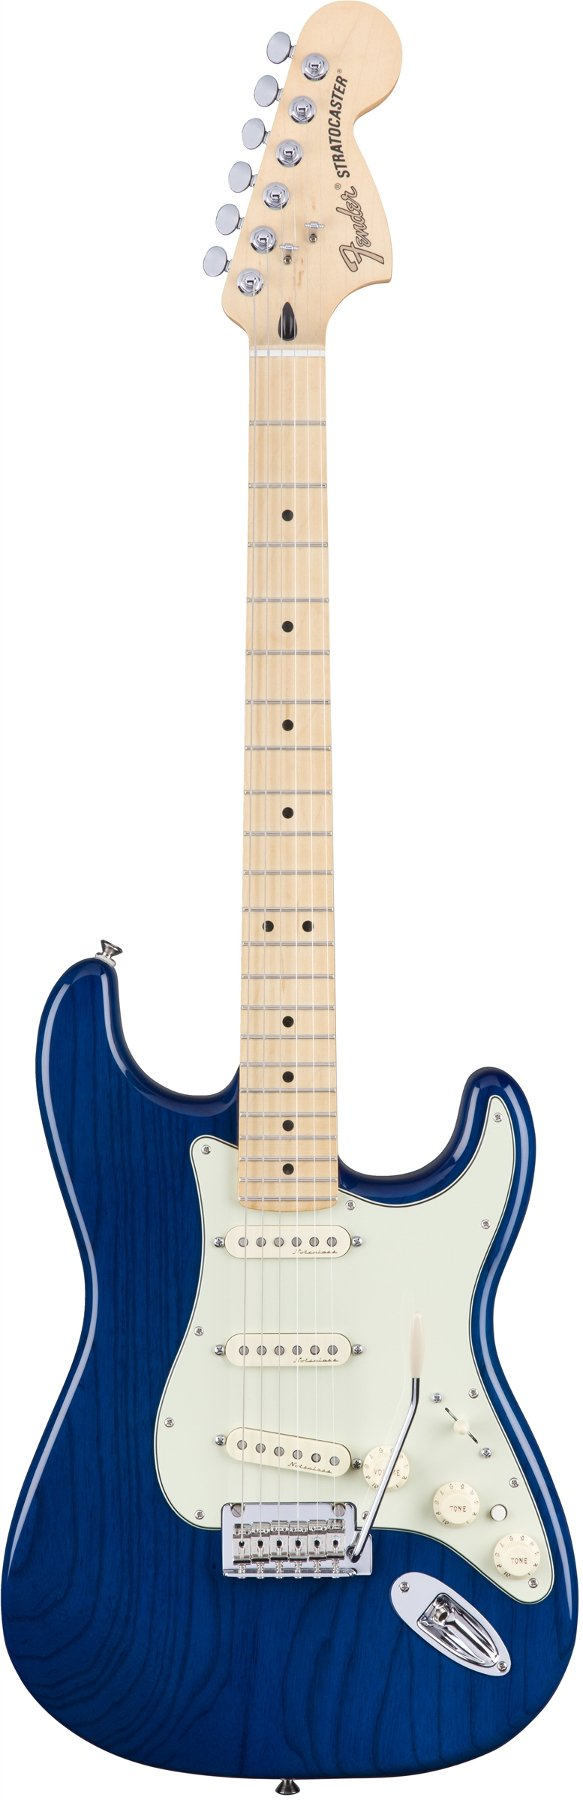 Electric Guitar with Maple Fingerboard